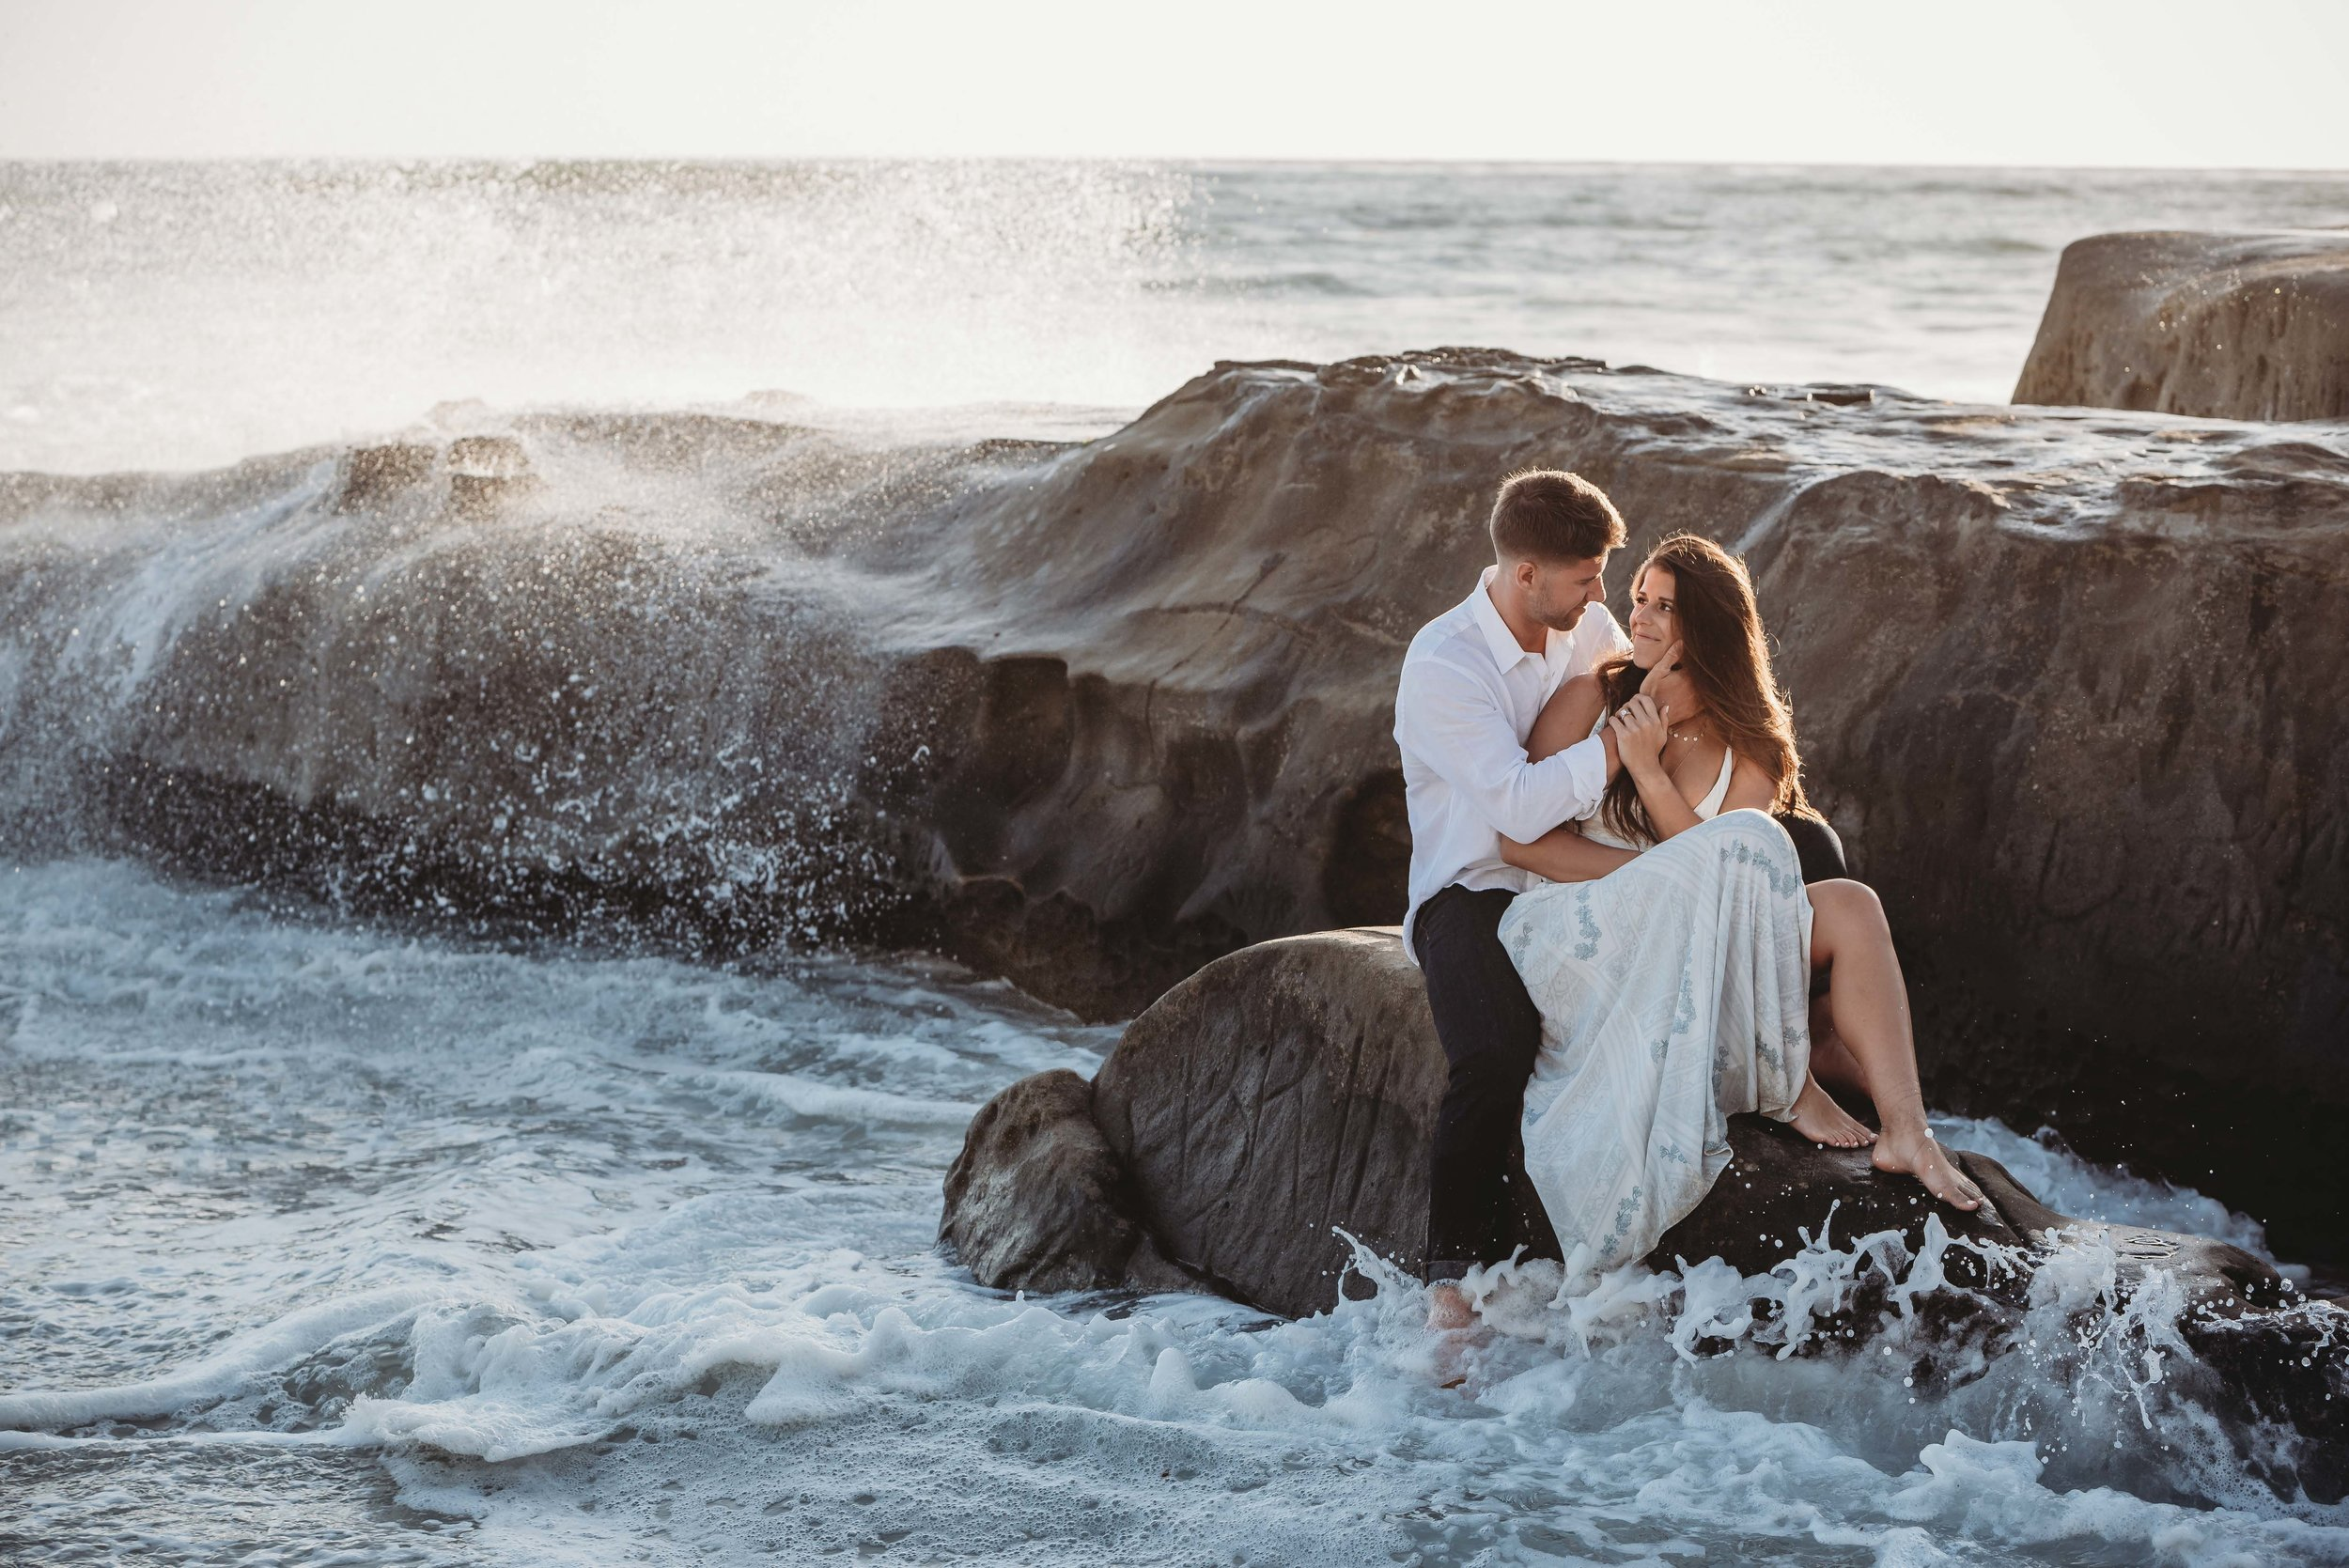 Windansea beach secret proposal